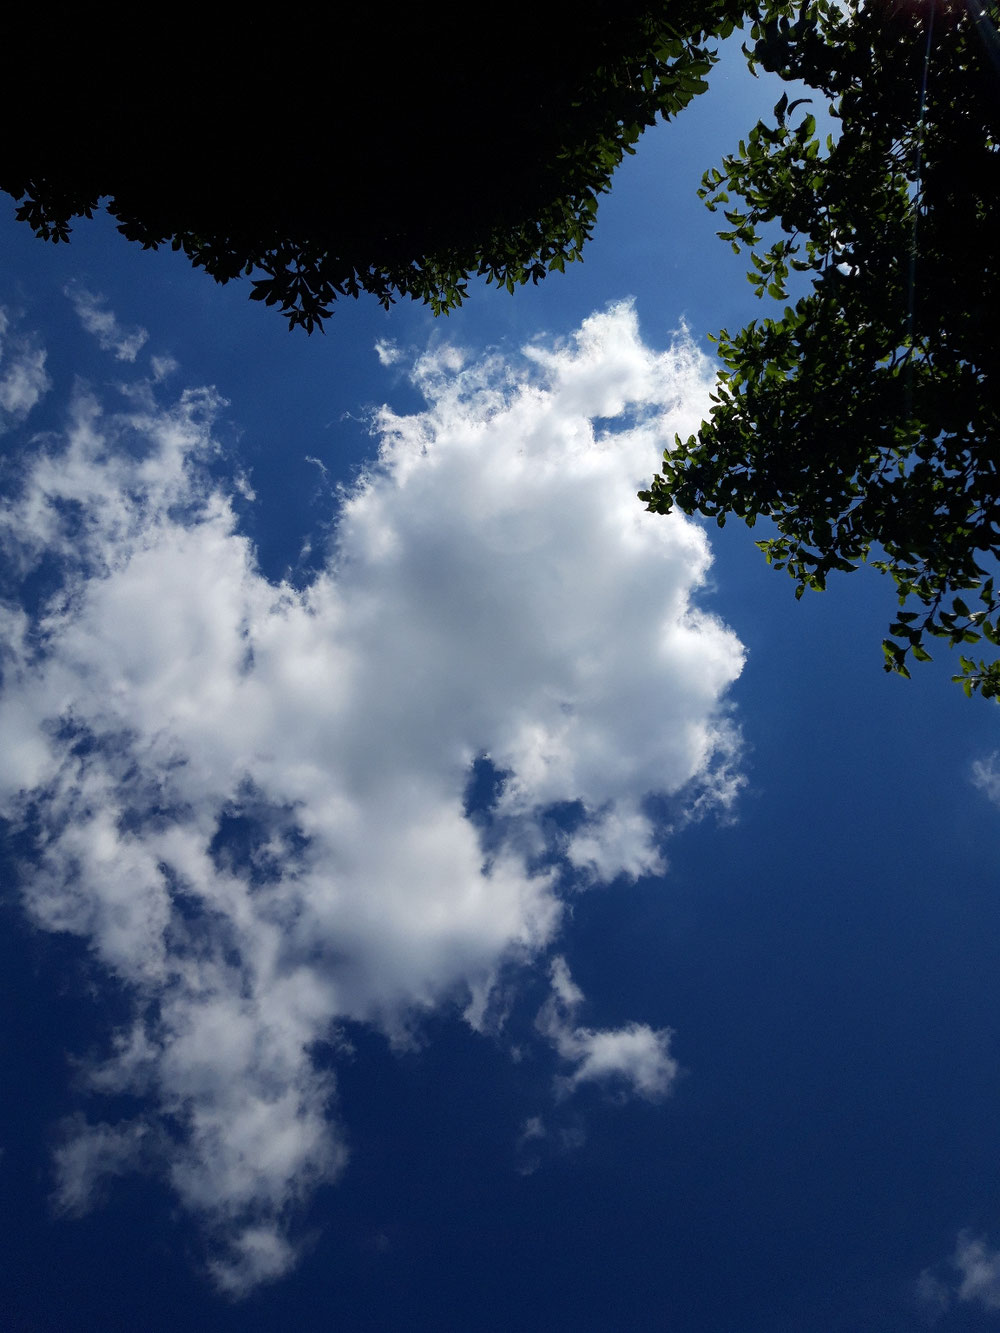 Taking a break and watching the clouds